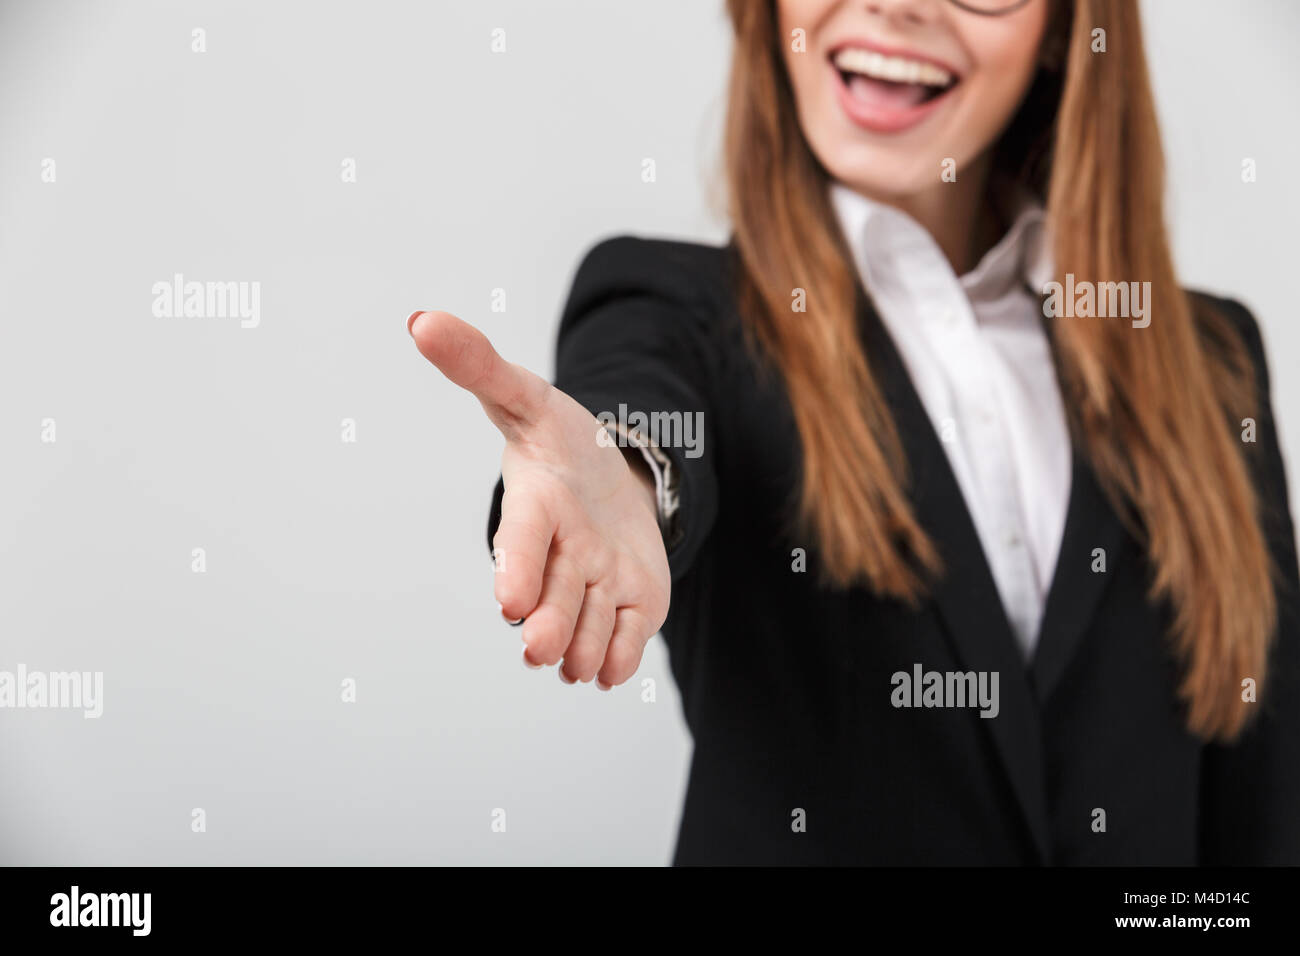 Cropped image of a happy businesswoman dressed in suit standing with outstretched hand for greeting isolated over Stock Photo